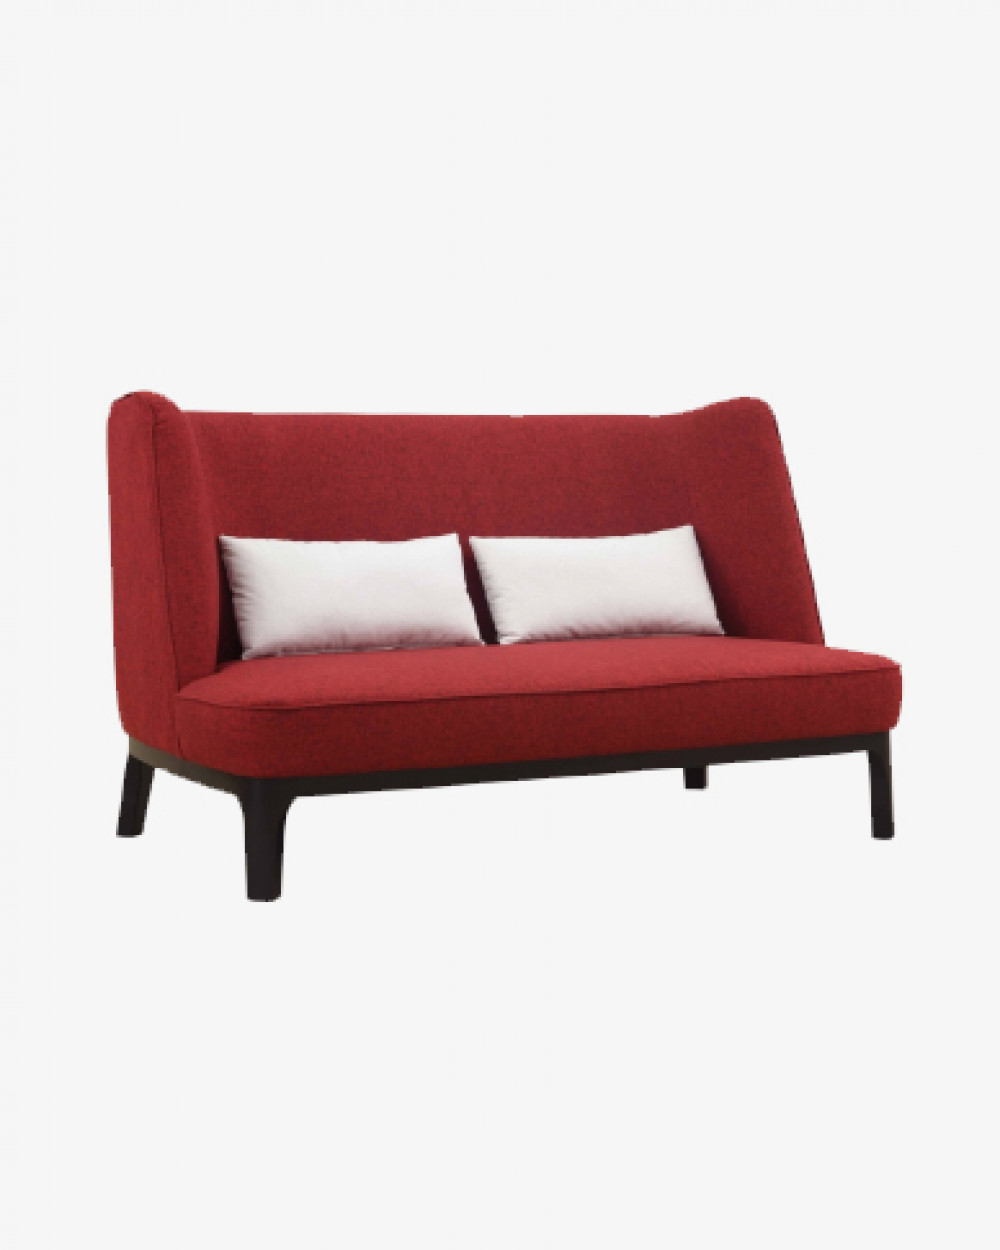 2 Seater | High Back Courtney Sofa